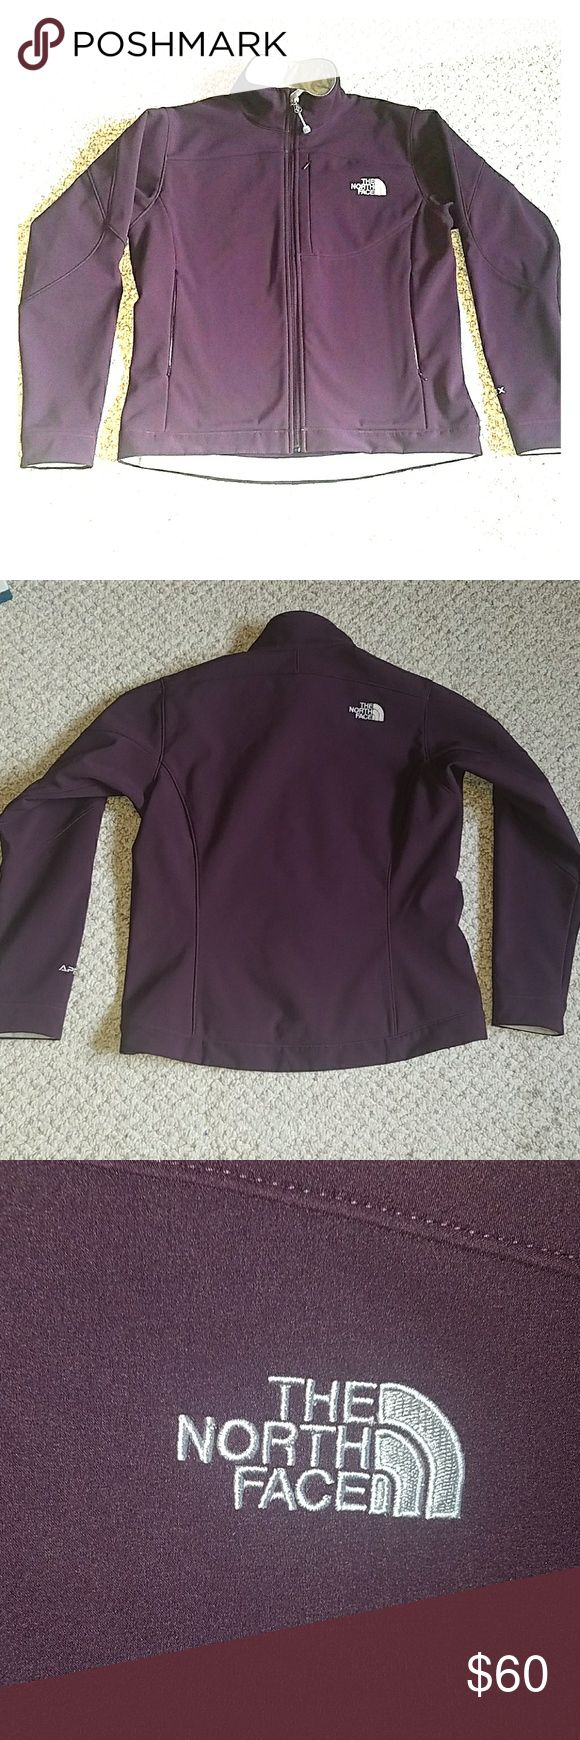 The North Face womans jacket Purple The North Face purple jacket in perfect condition. The North Face Jackets & Coats Utility Jackets